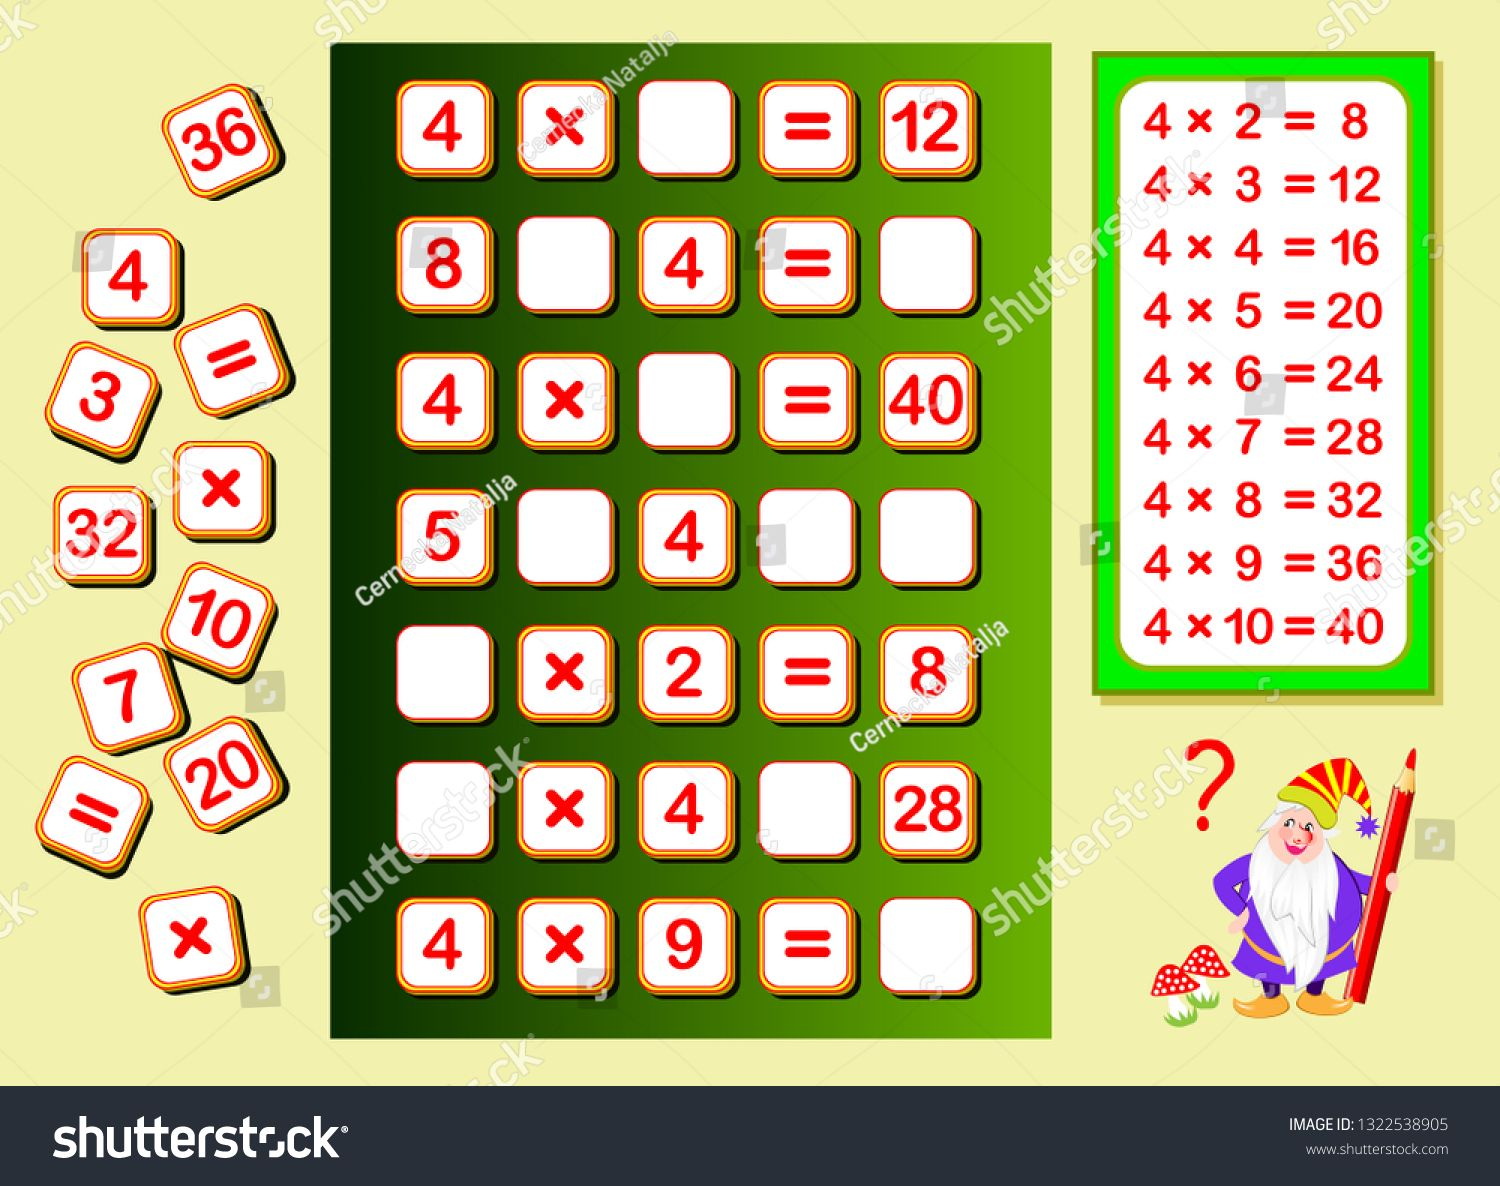 Multiplication Table By 4 For Kids Find Places For